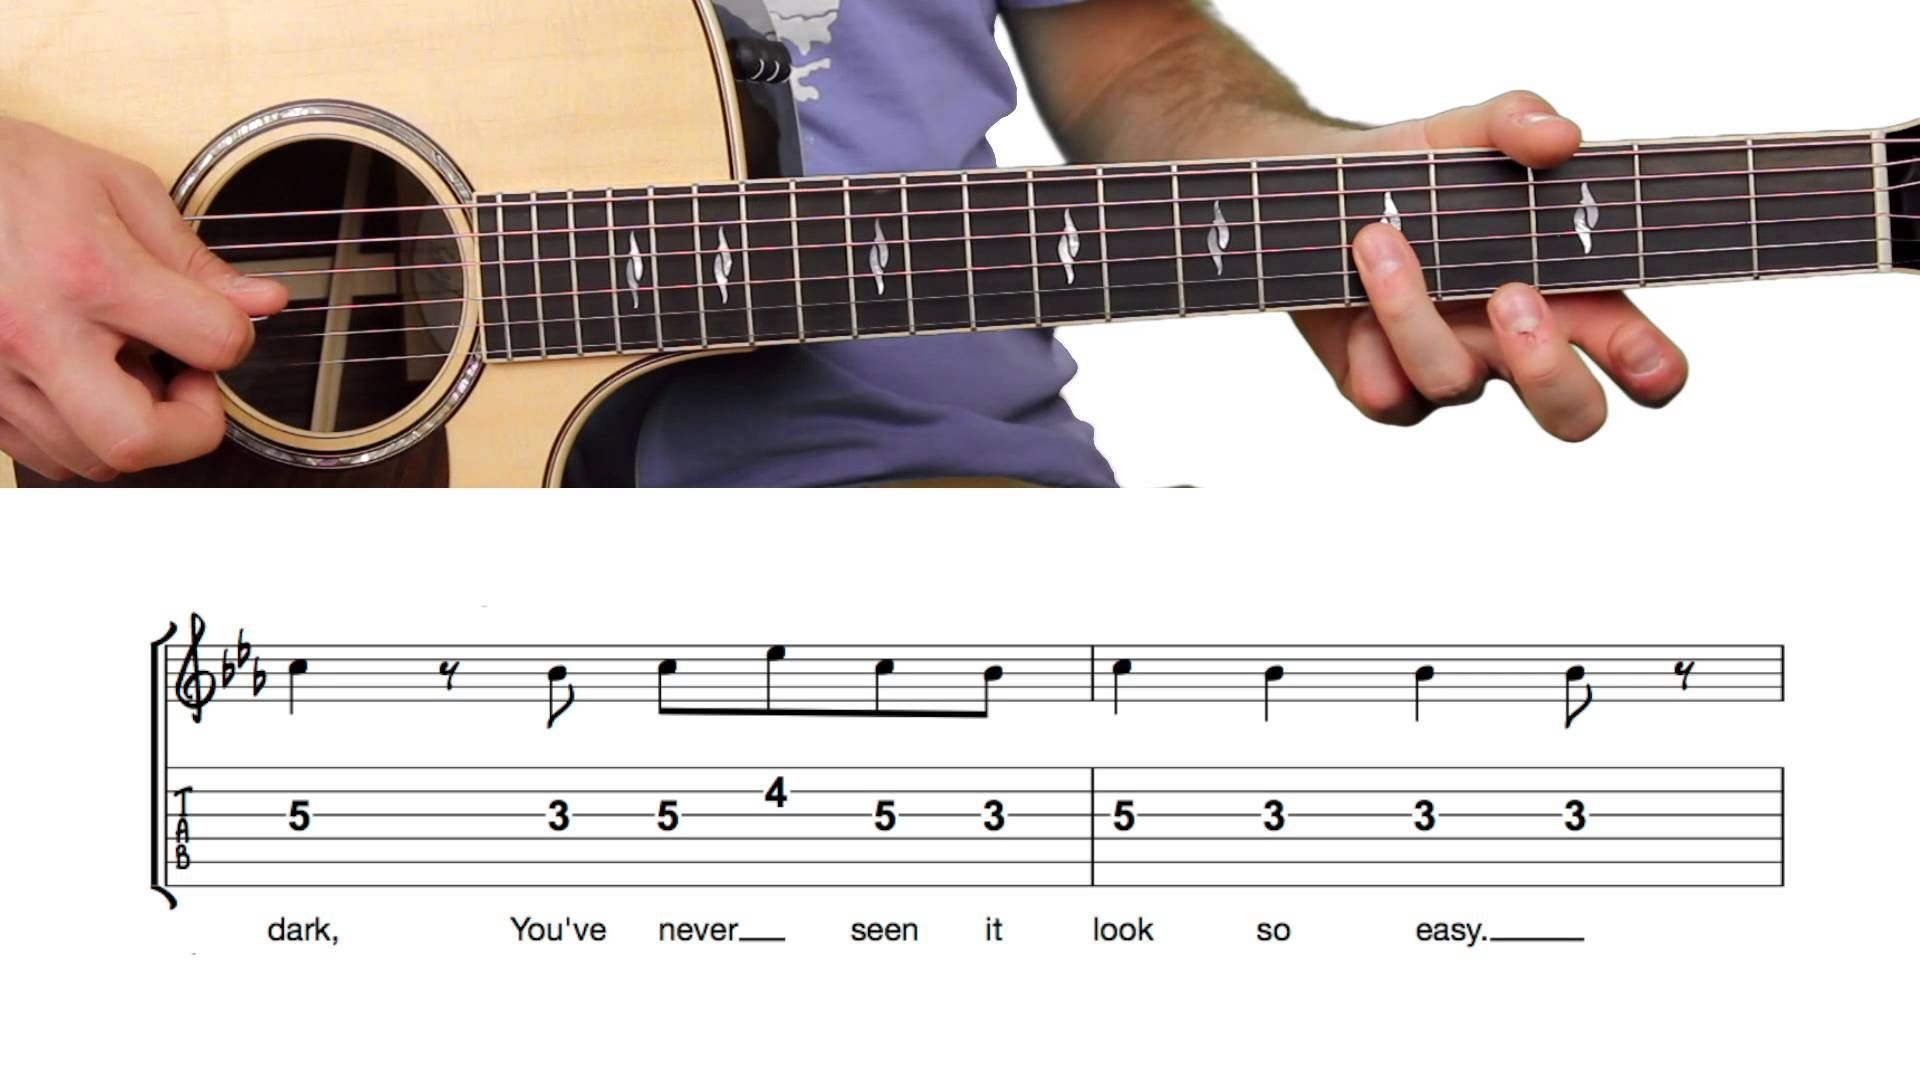 Drag Me Down One Direction Guitar Lesson Tutorial Chords Melody Tab Guitar Guitar Lessons Tutorials Guitar Lessons